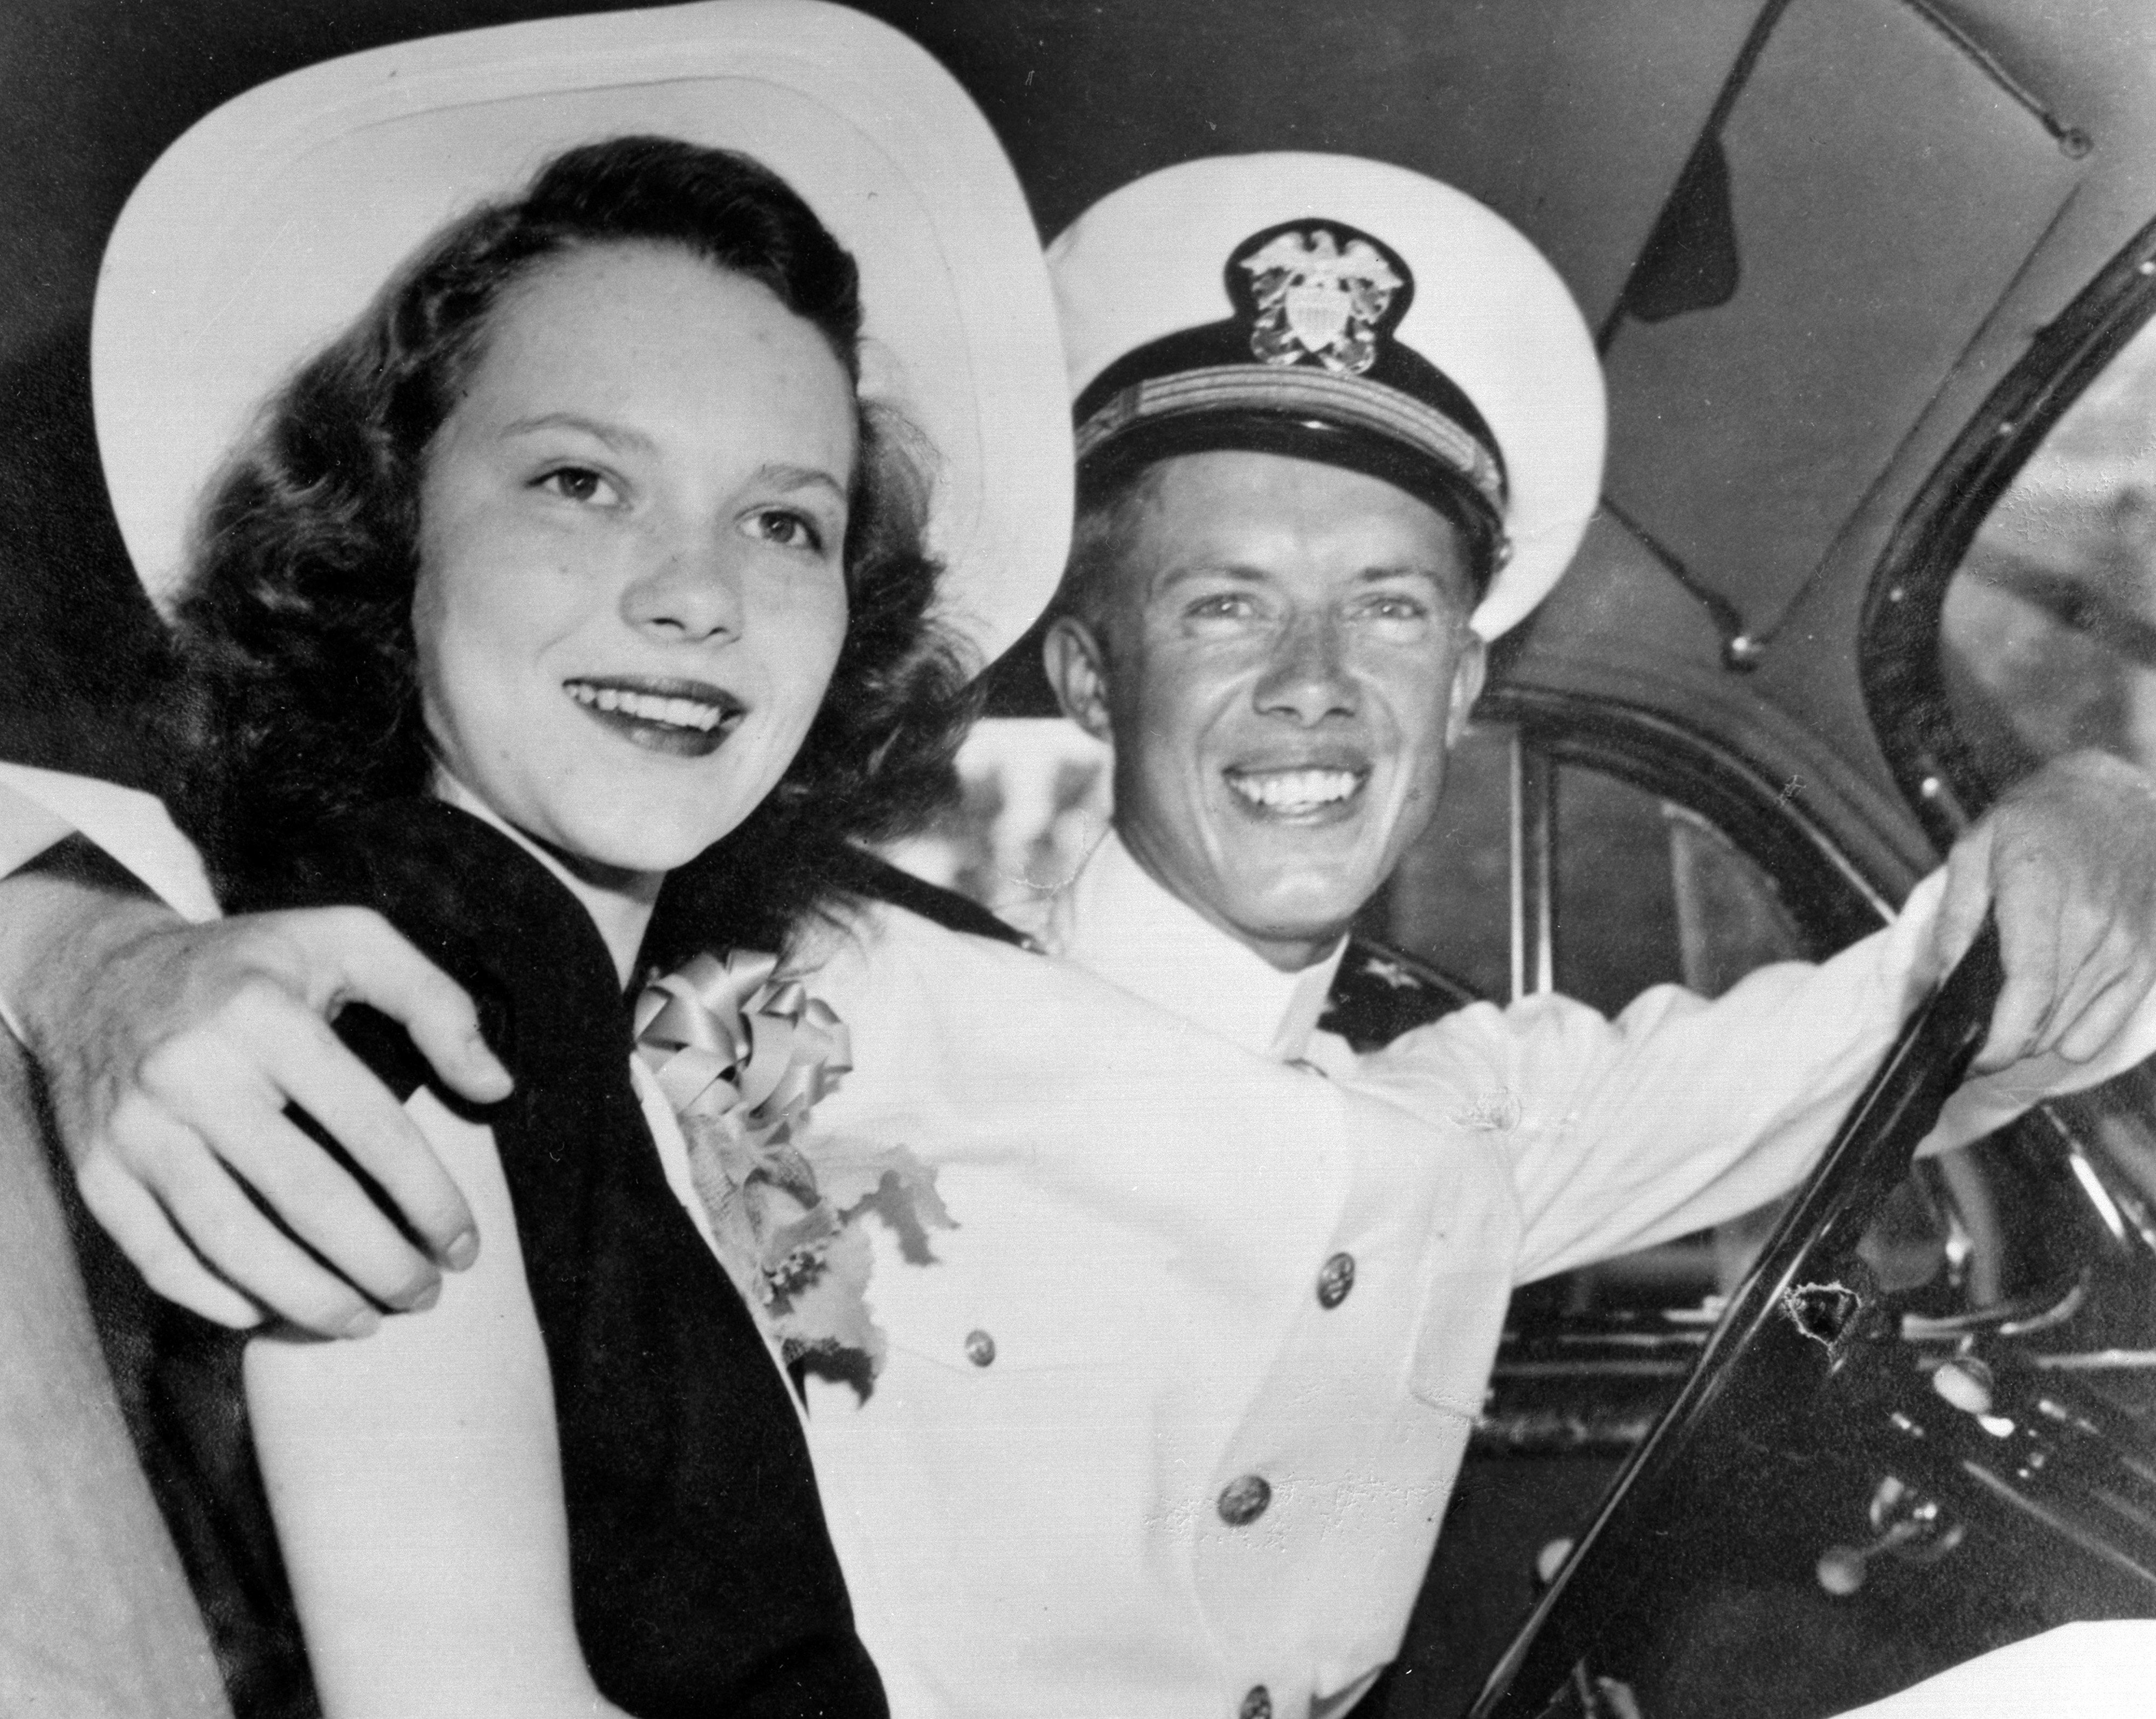 Jimmy and Rosalynn Carter on their wedding day in 1946.